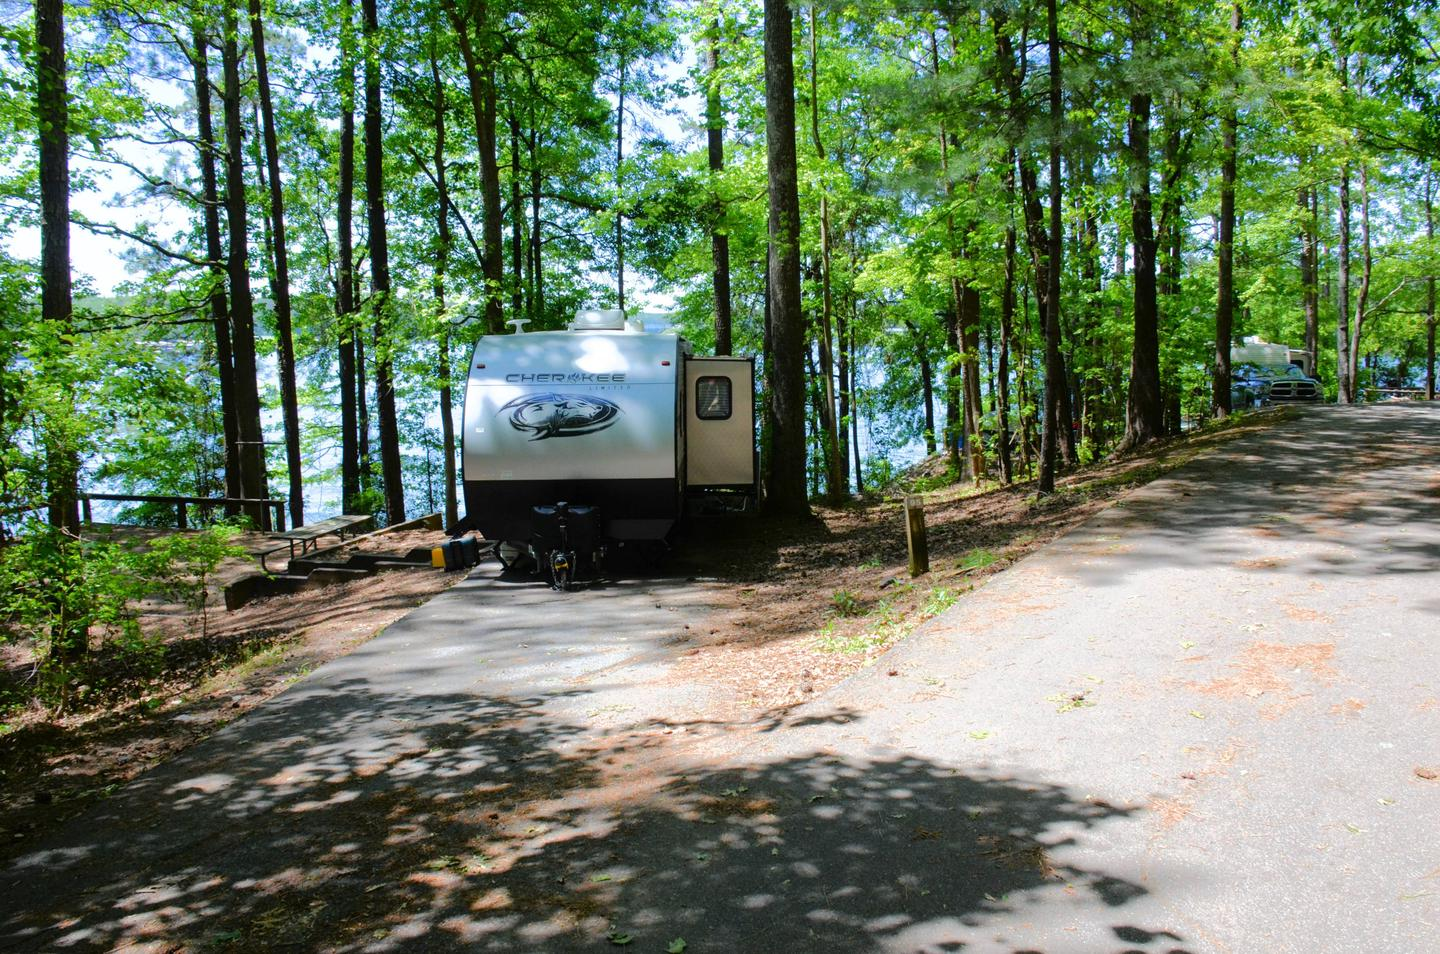 Driveway entrance angle/slope, utilities-side clearance.McKinney Campground, campsite 95.